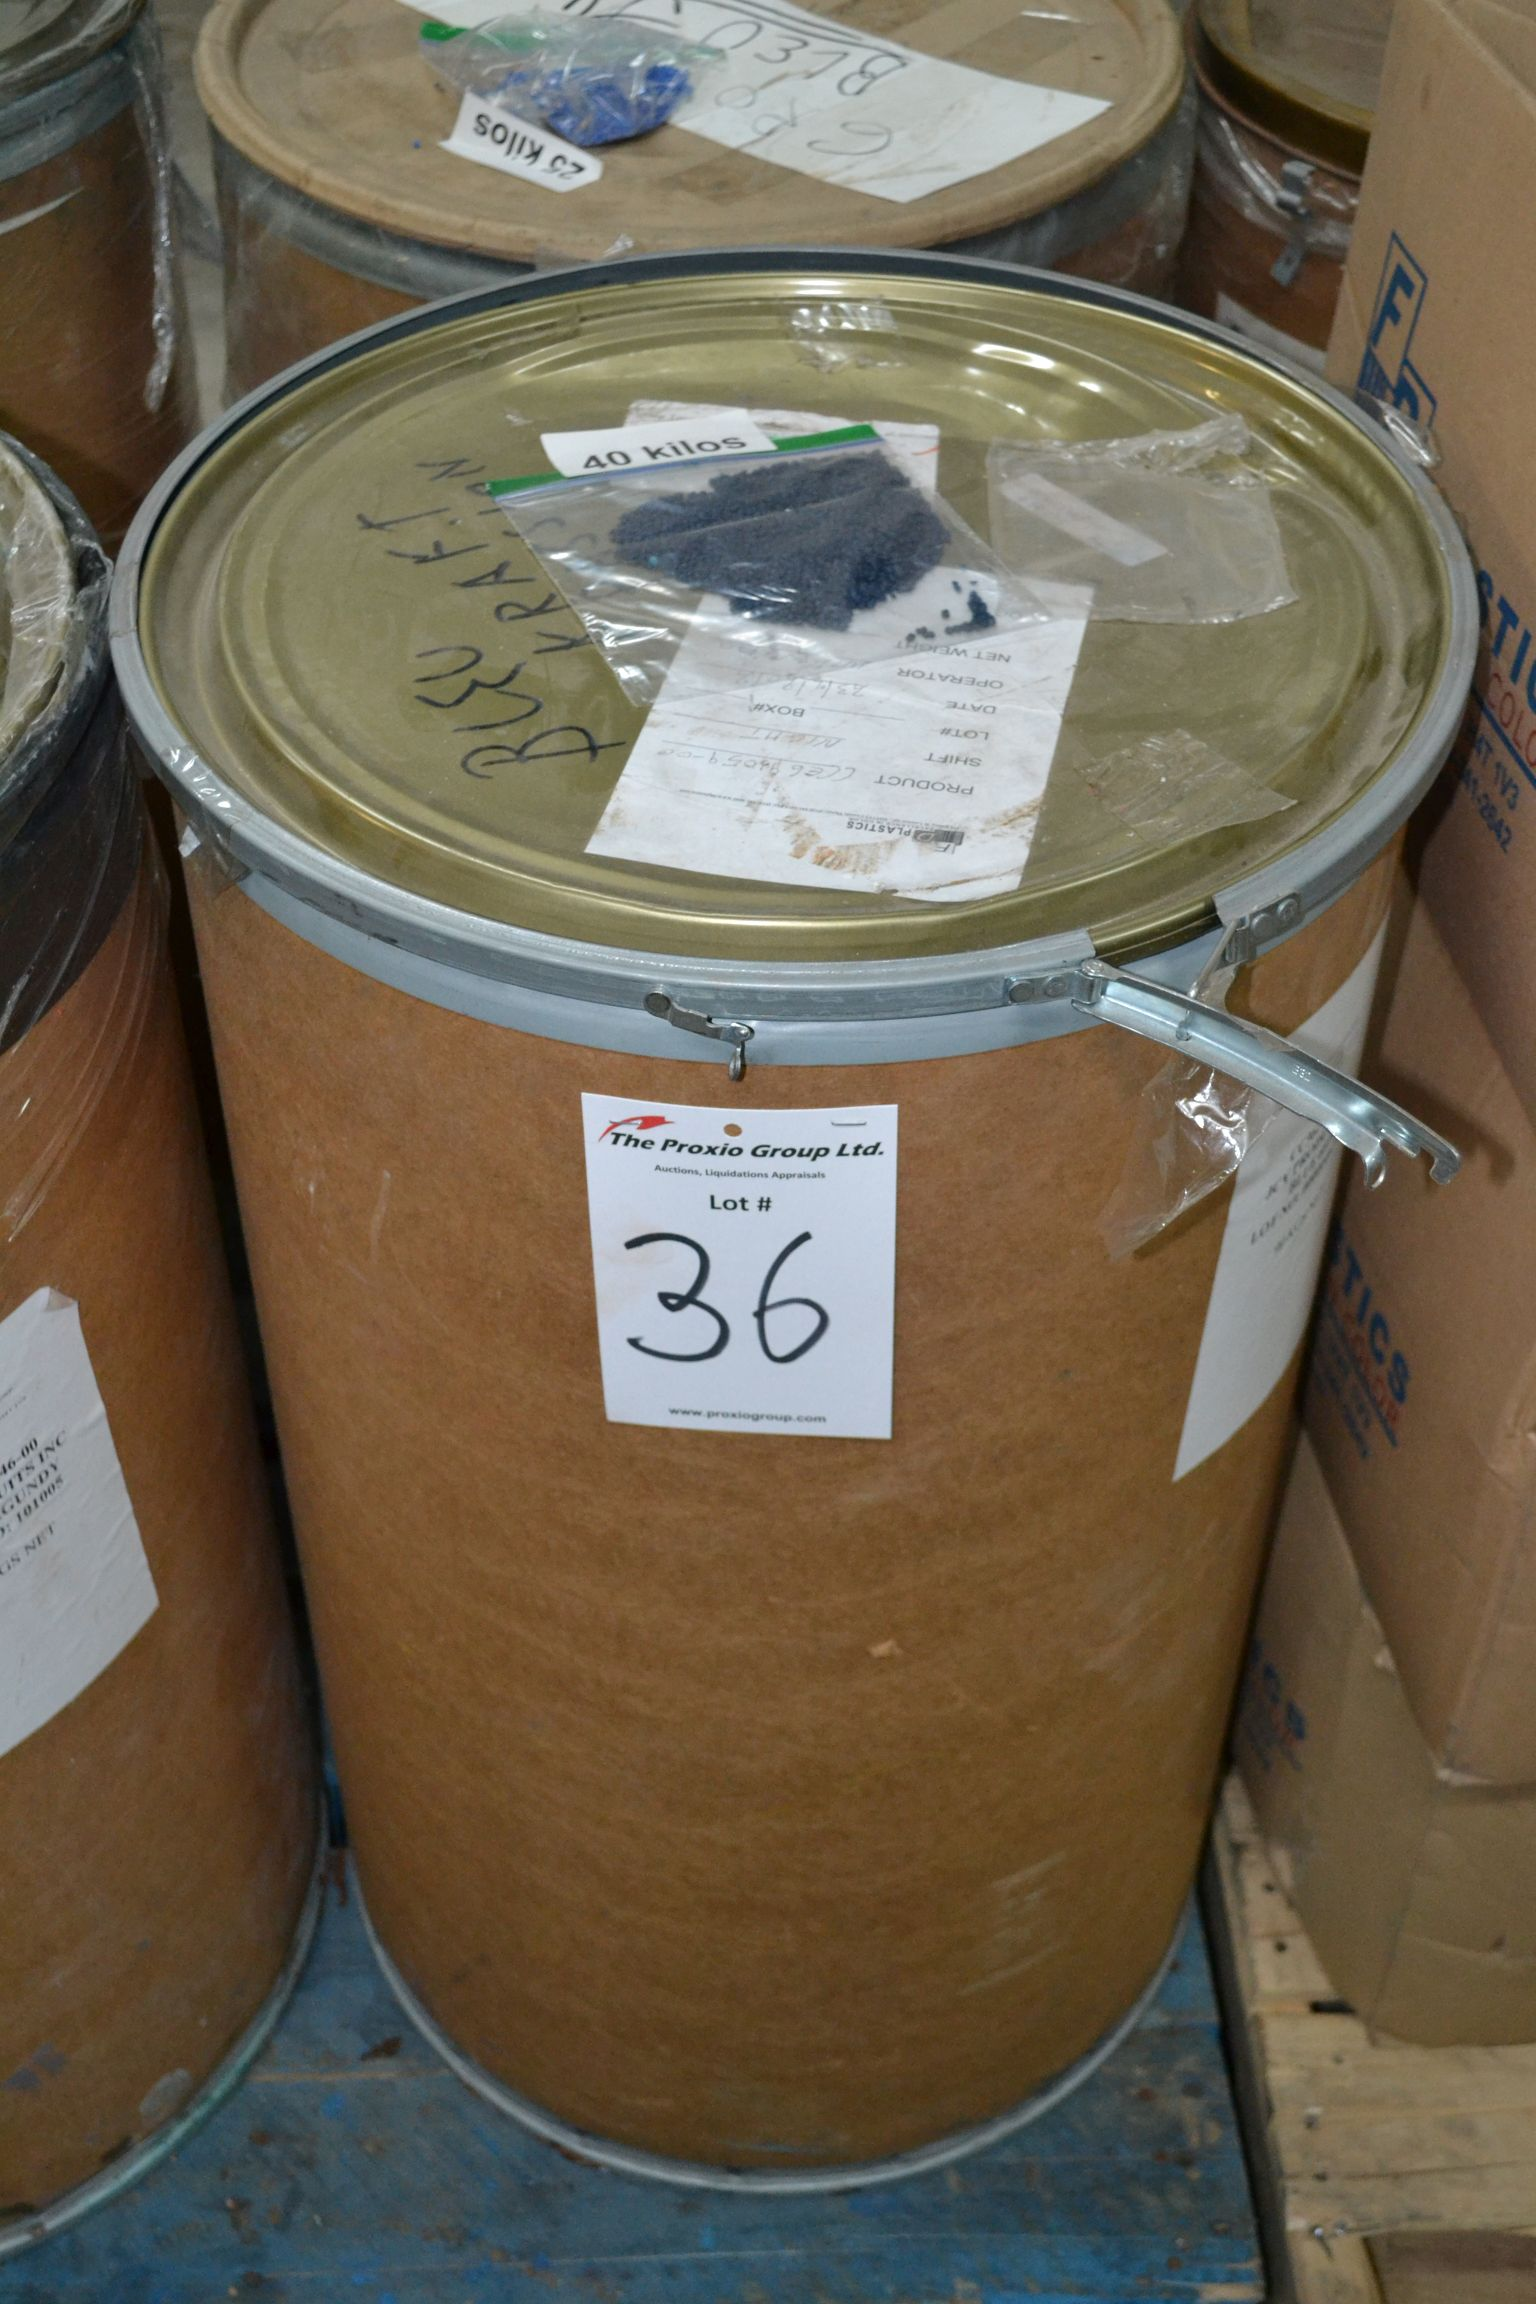 Lot 36 - Lot colored resin JCV Products Blue 6810, Approx 40 KG